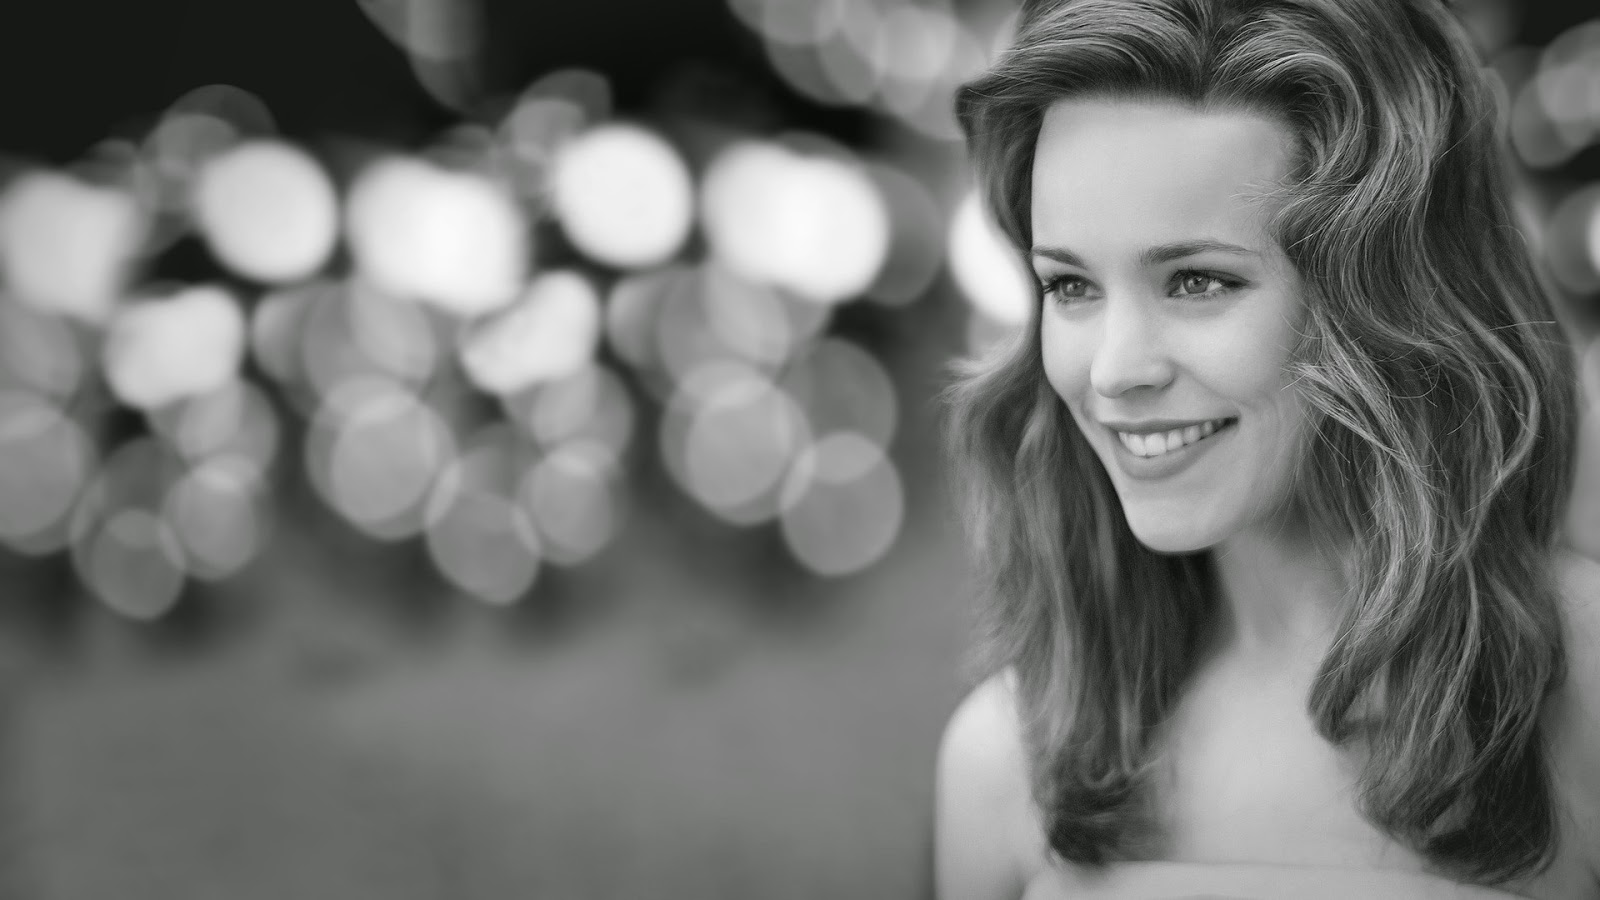 Rachel McAdams Hd Wallpapers Free Download